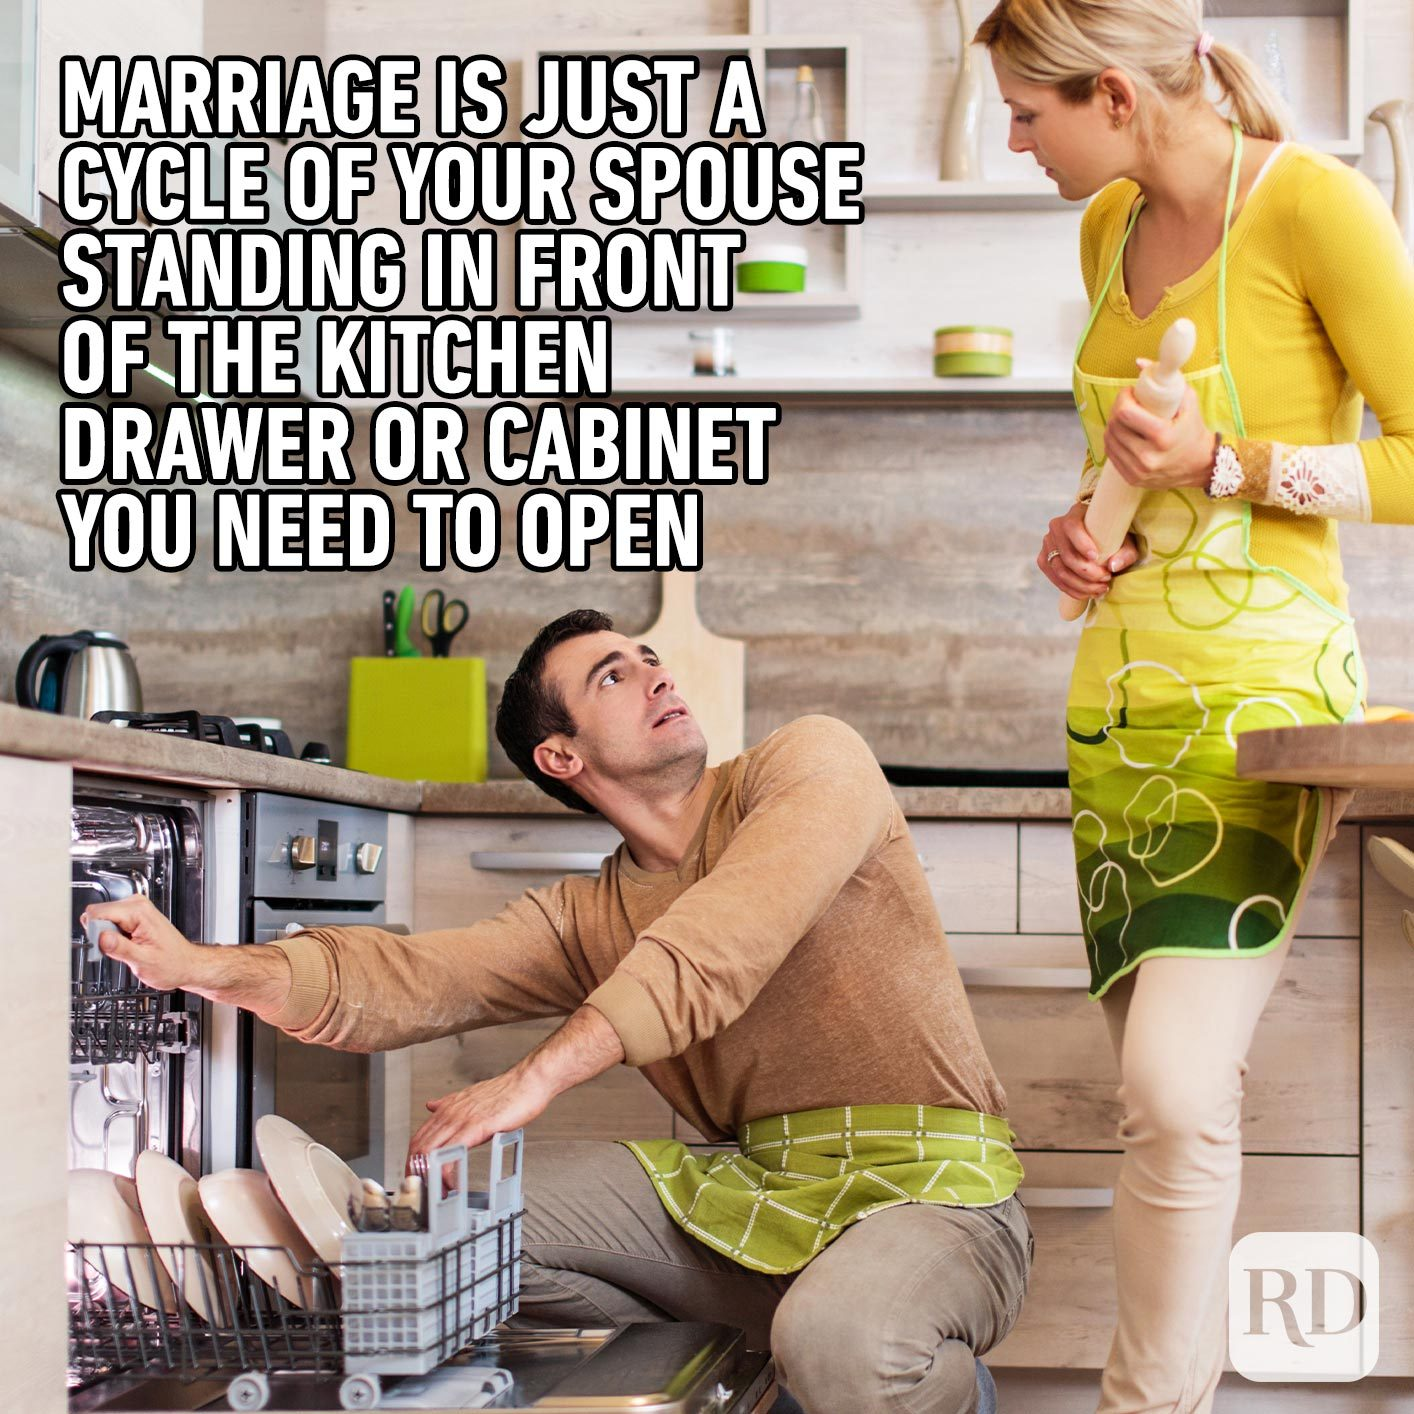 Woman waiting for man to step away from dishwasher. Meme text: Marriage is just a cycle of your spouse standing in front of the kitchen drawer or cabinet you need to open